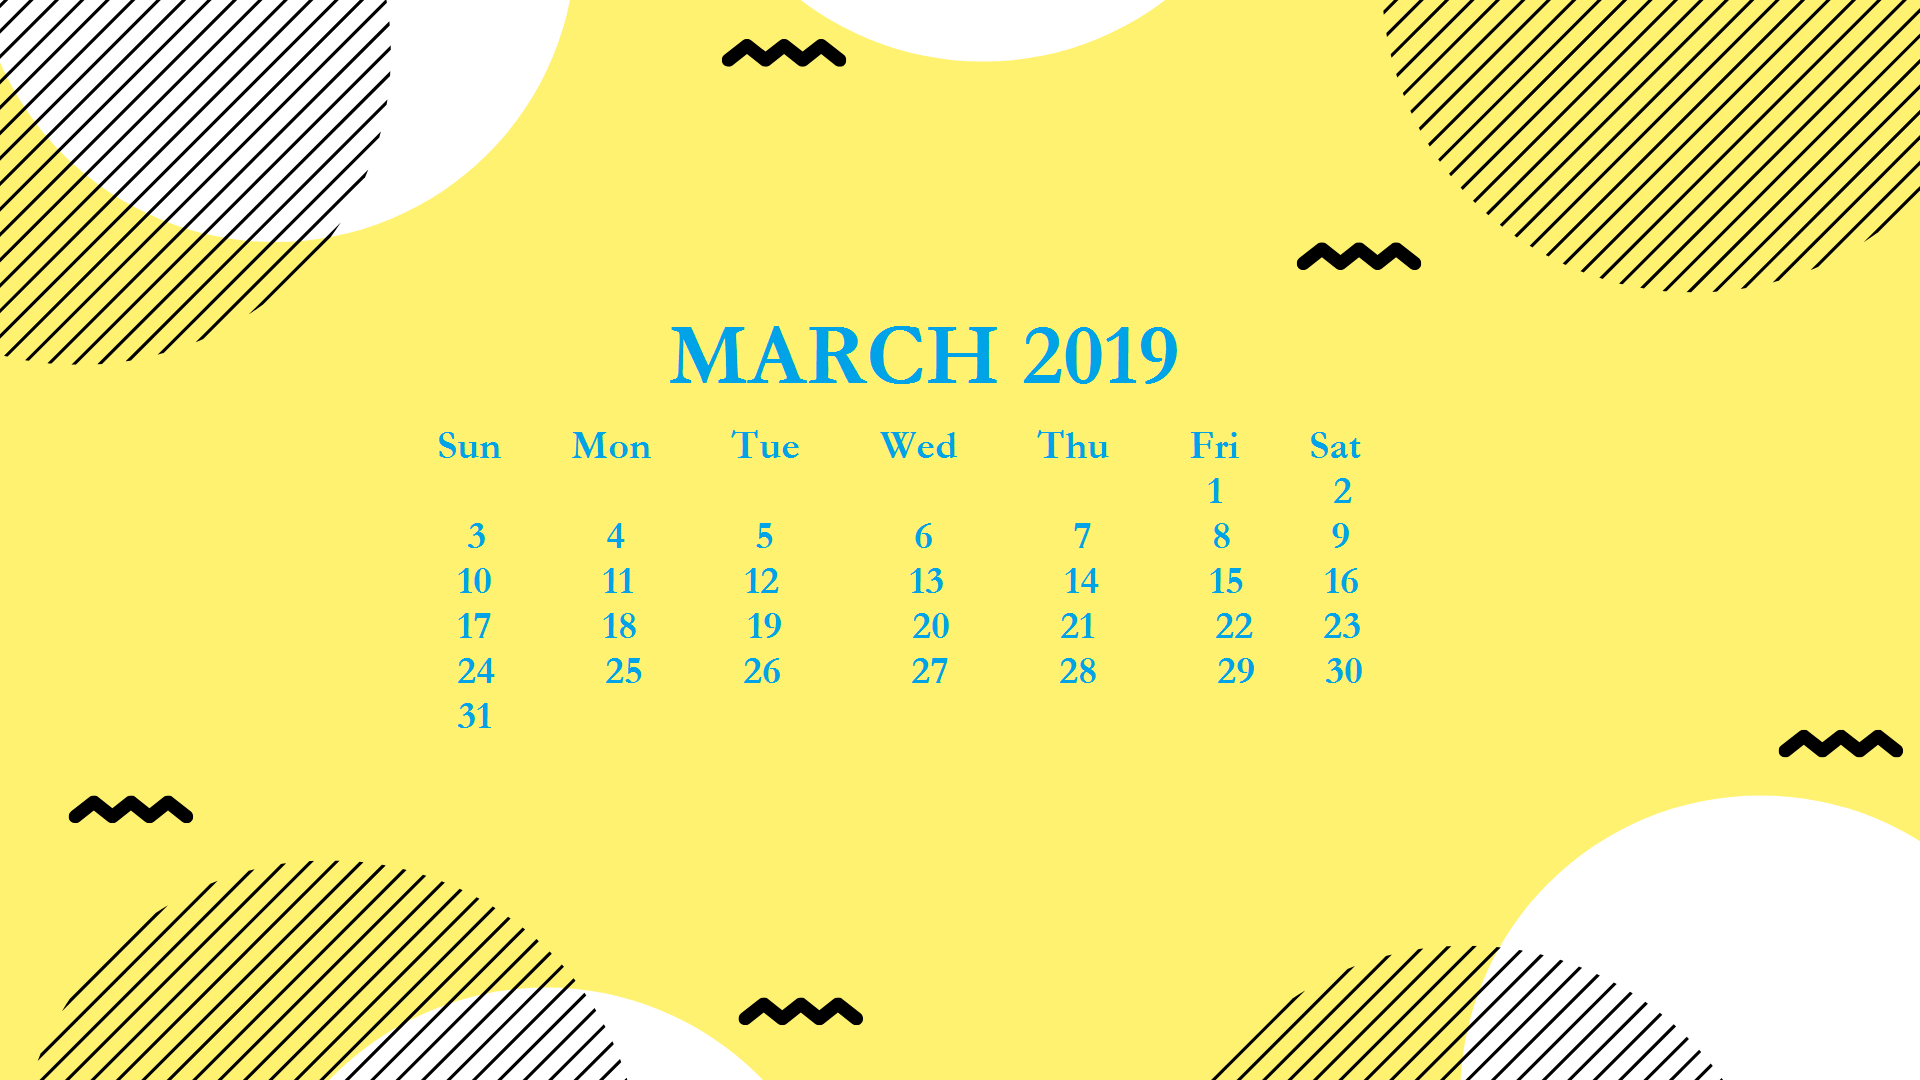 Free March 2019 HD Calendar Wallpaper